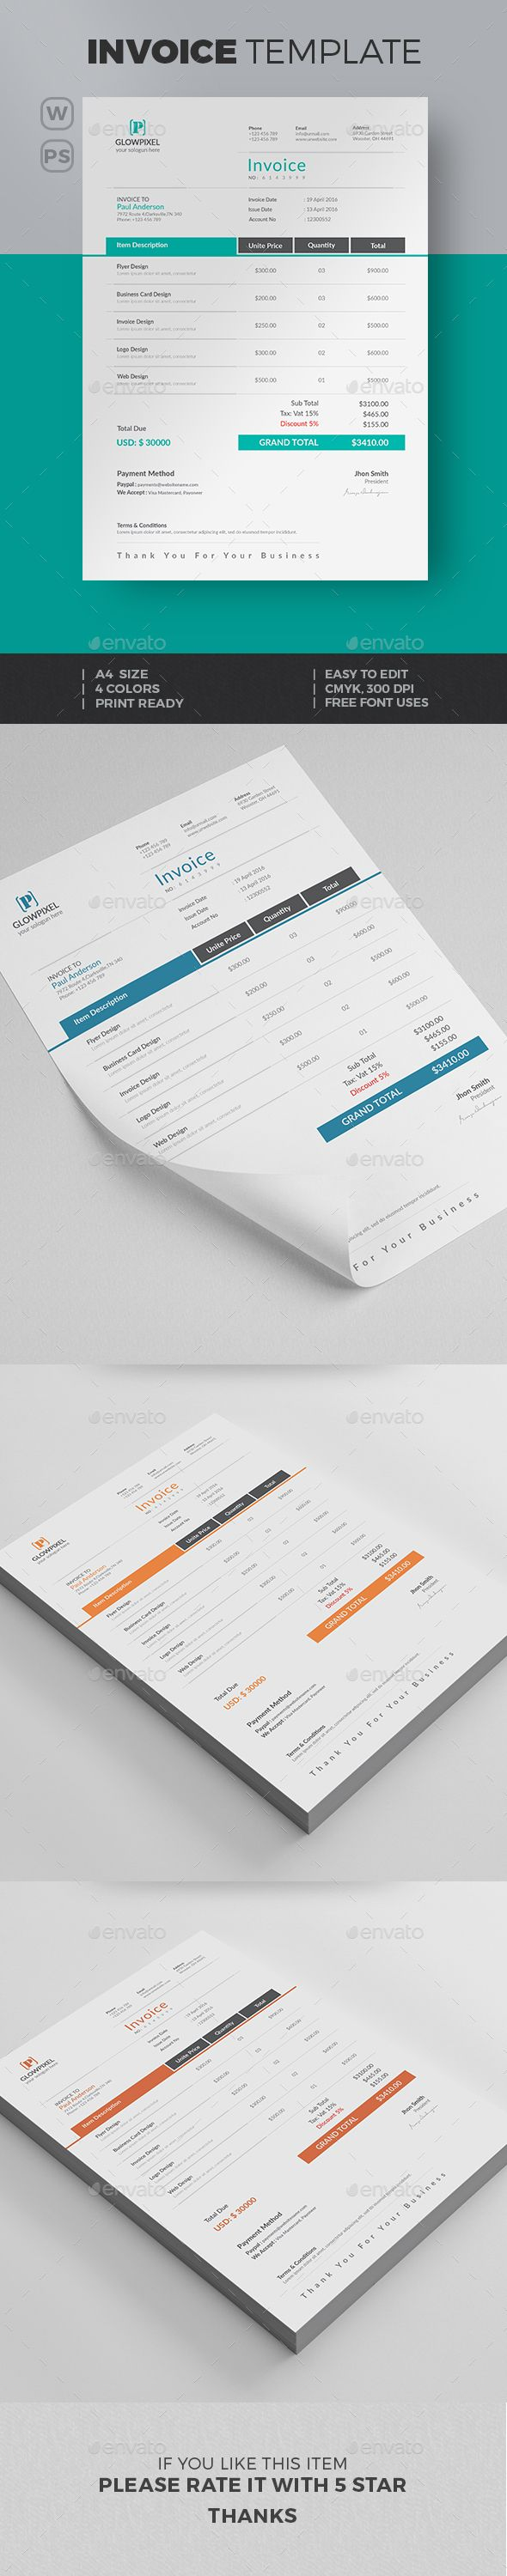 17 best ideas about invoice template on pinterest   invoice design, Simple invoice